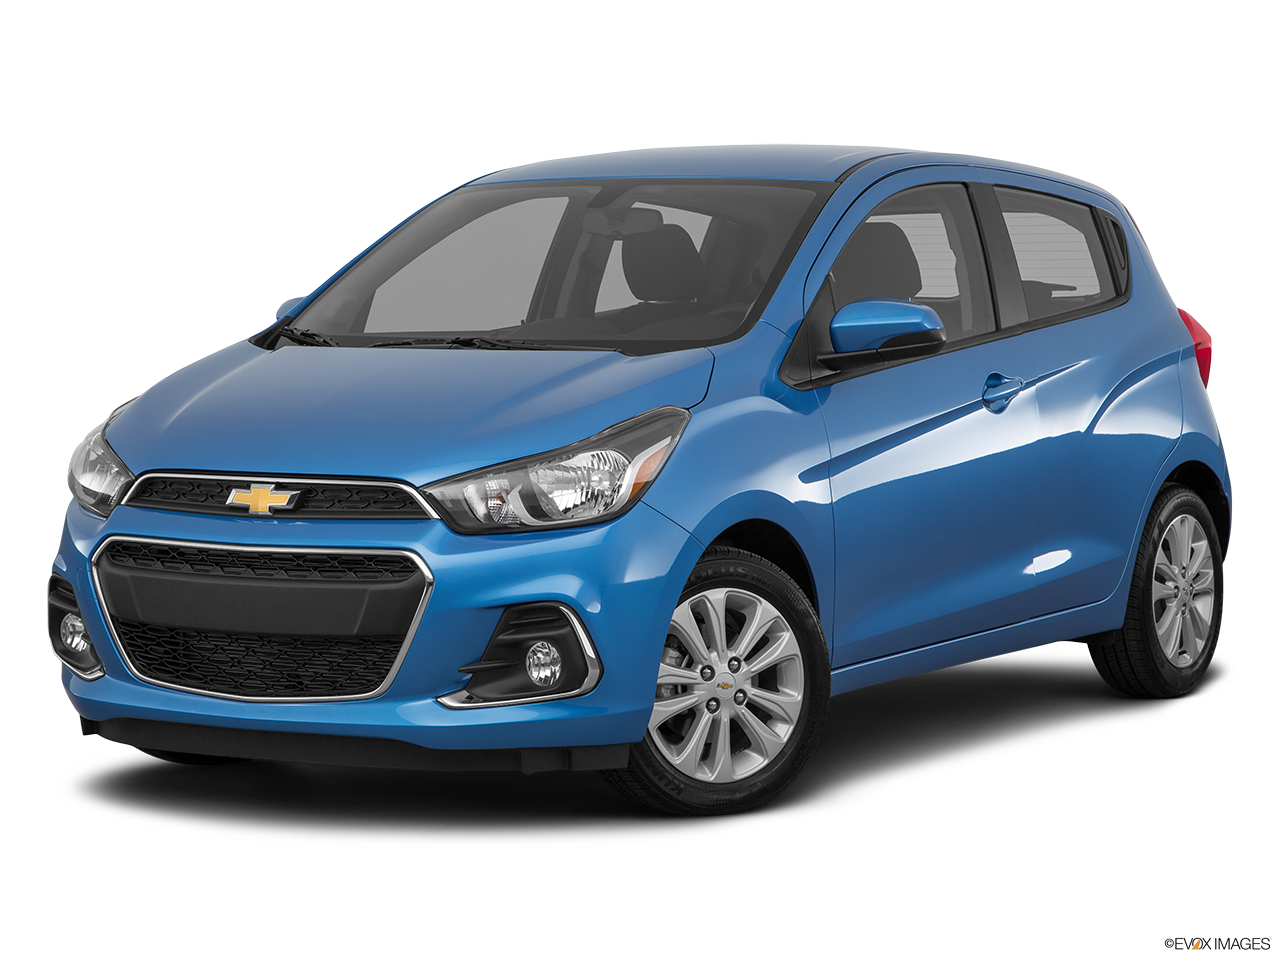 Test drive a 2016 chevrolet spark at moss bros chevrolet in moreno valley